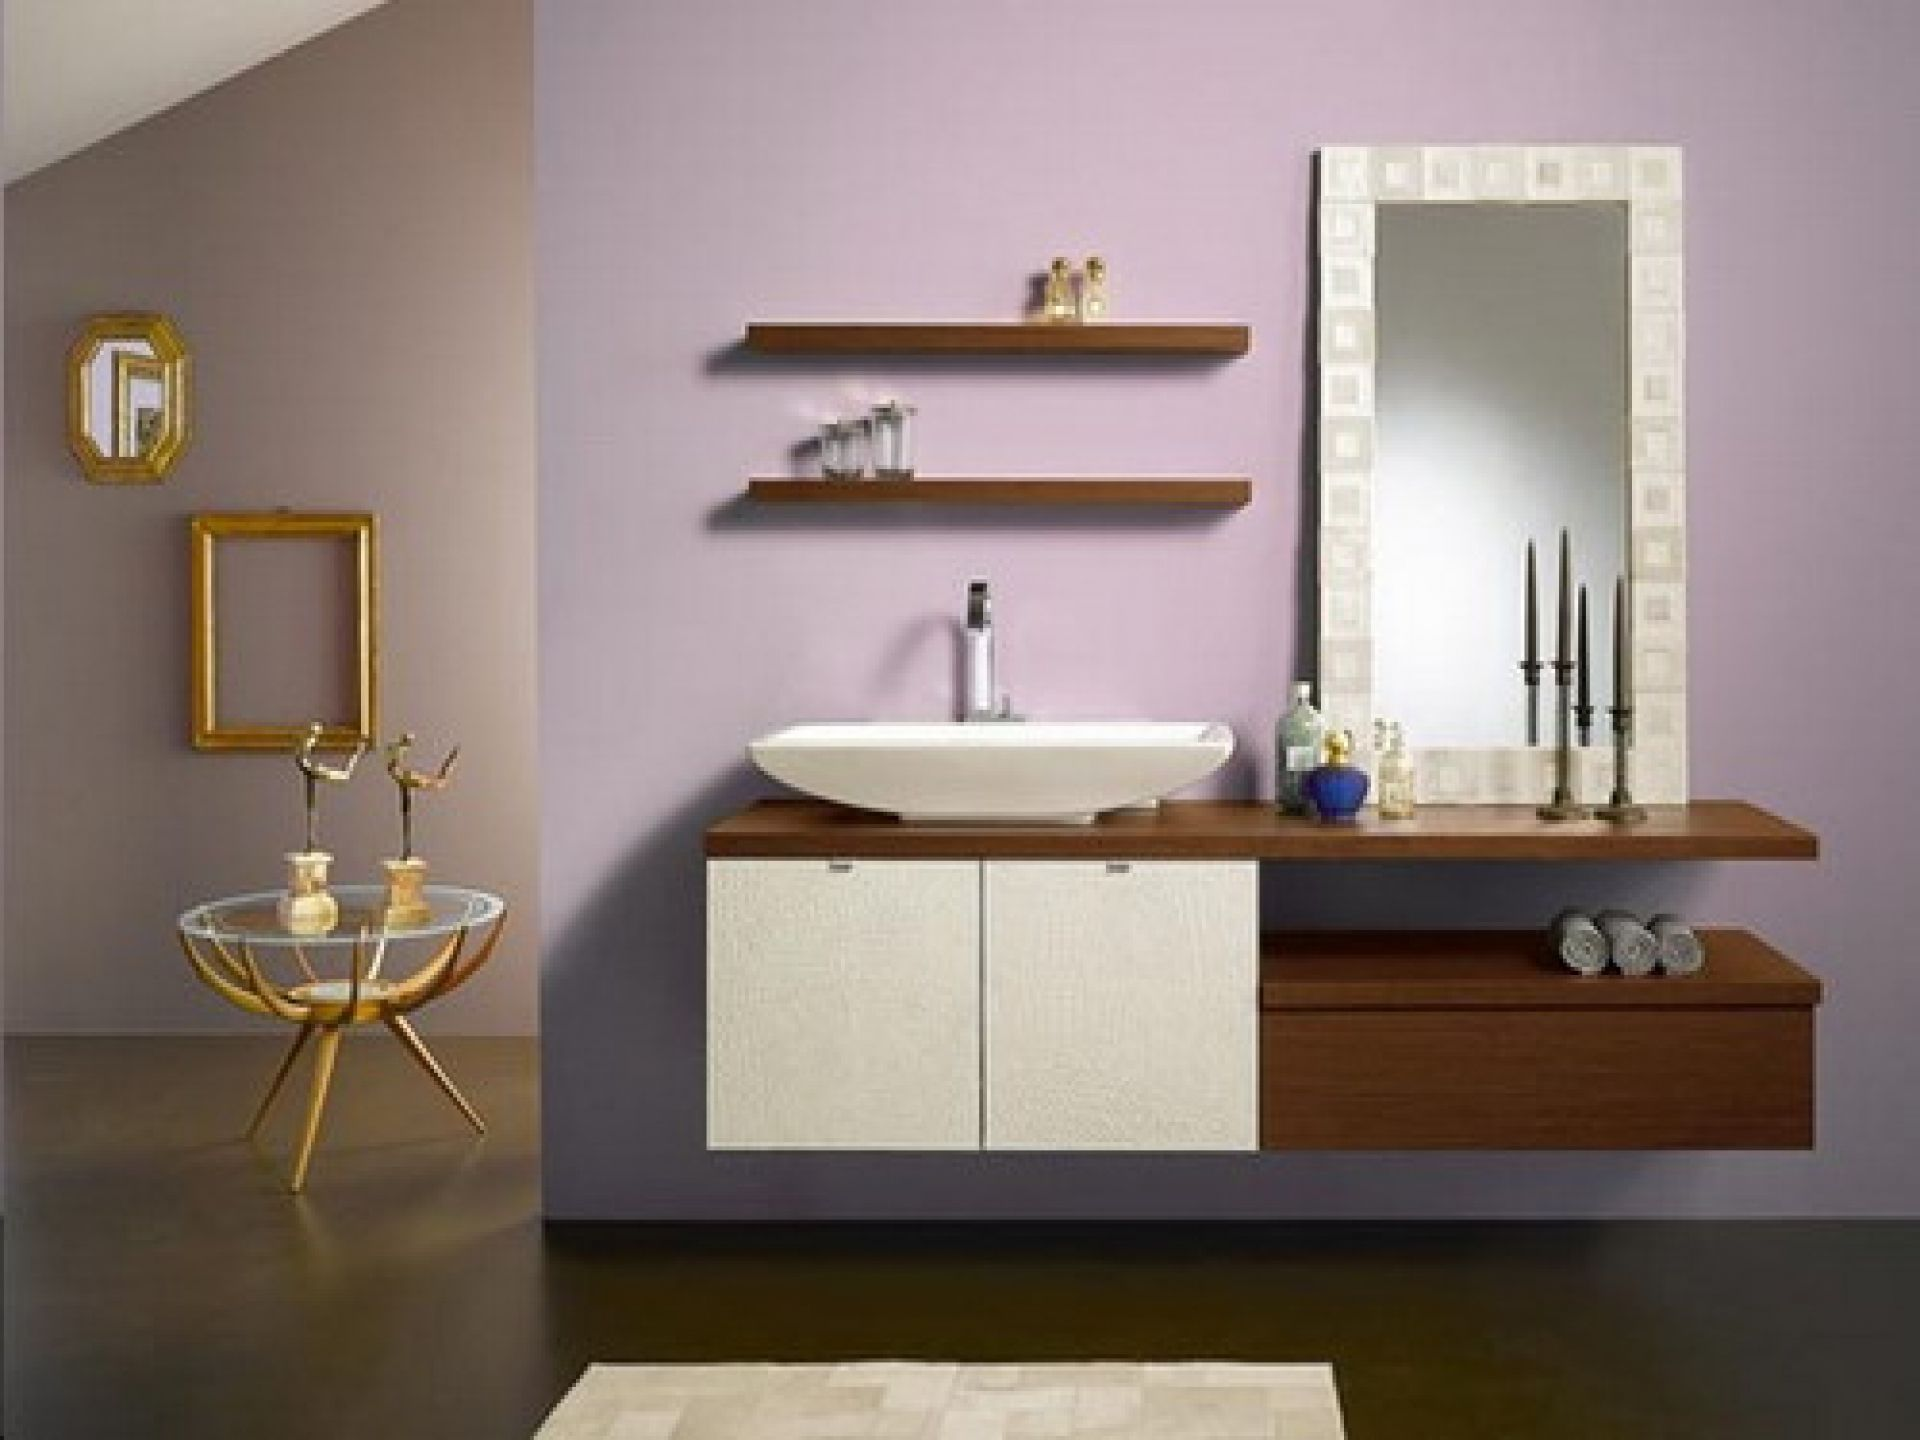 Beauteous Bathroom Using Hanging Cabinet and Mounted Wooden Shelve Decor